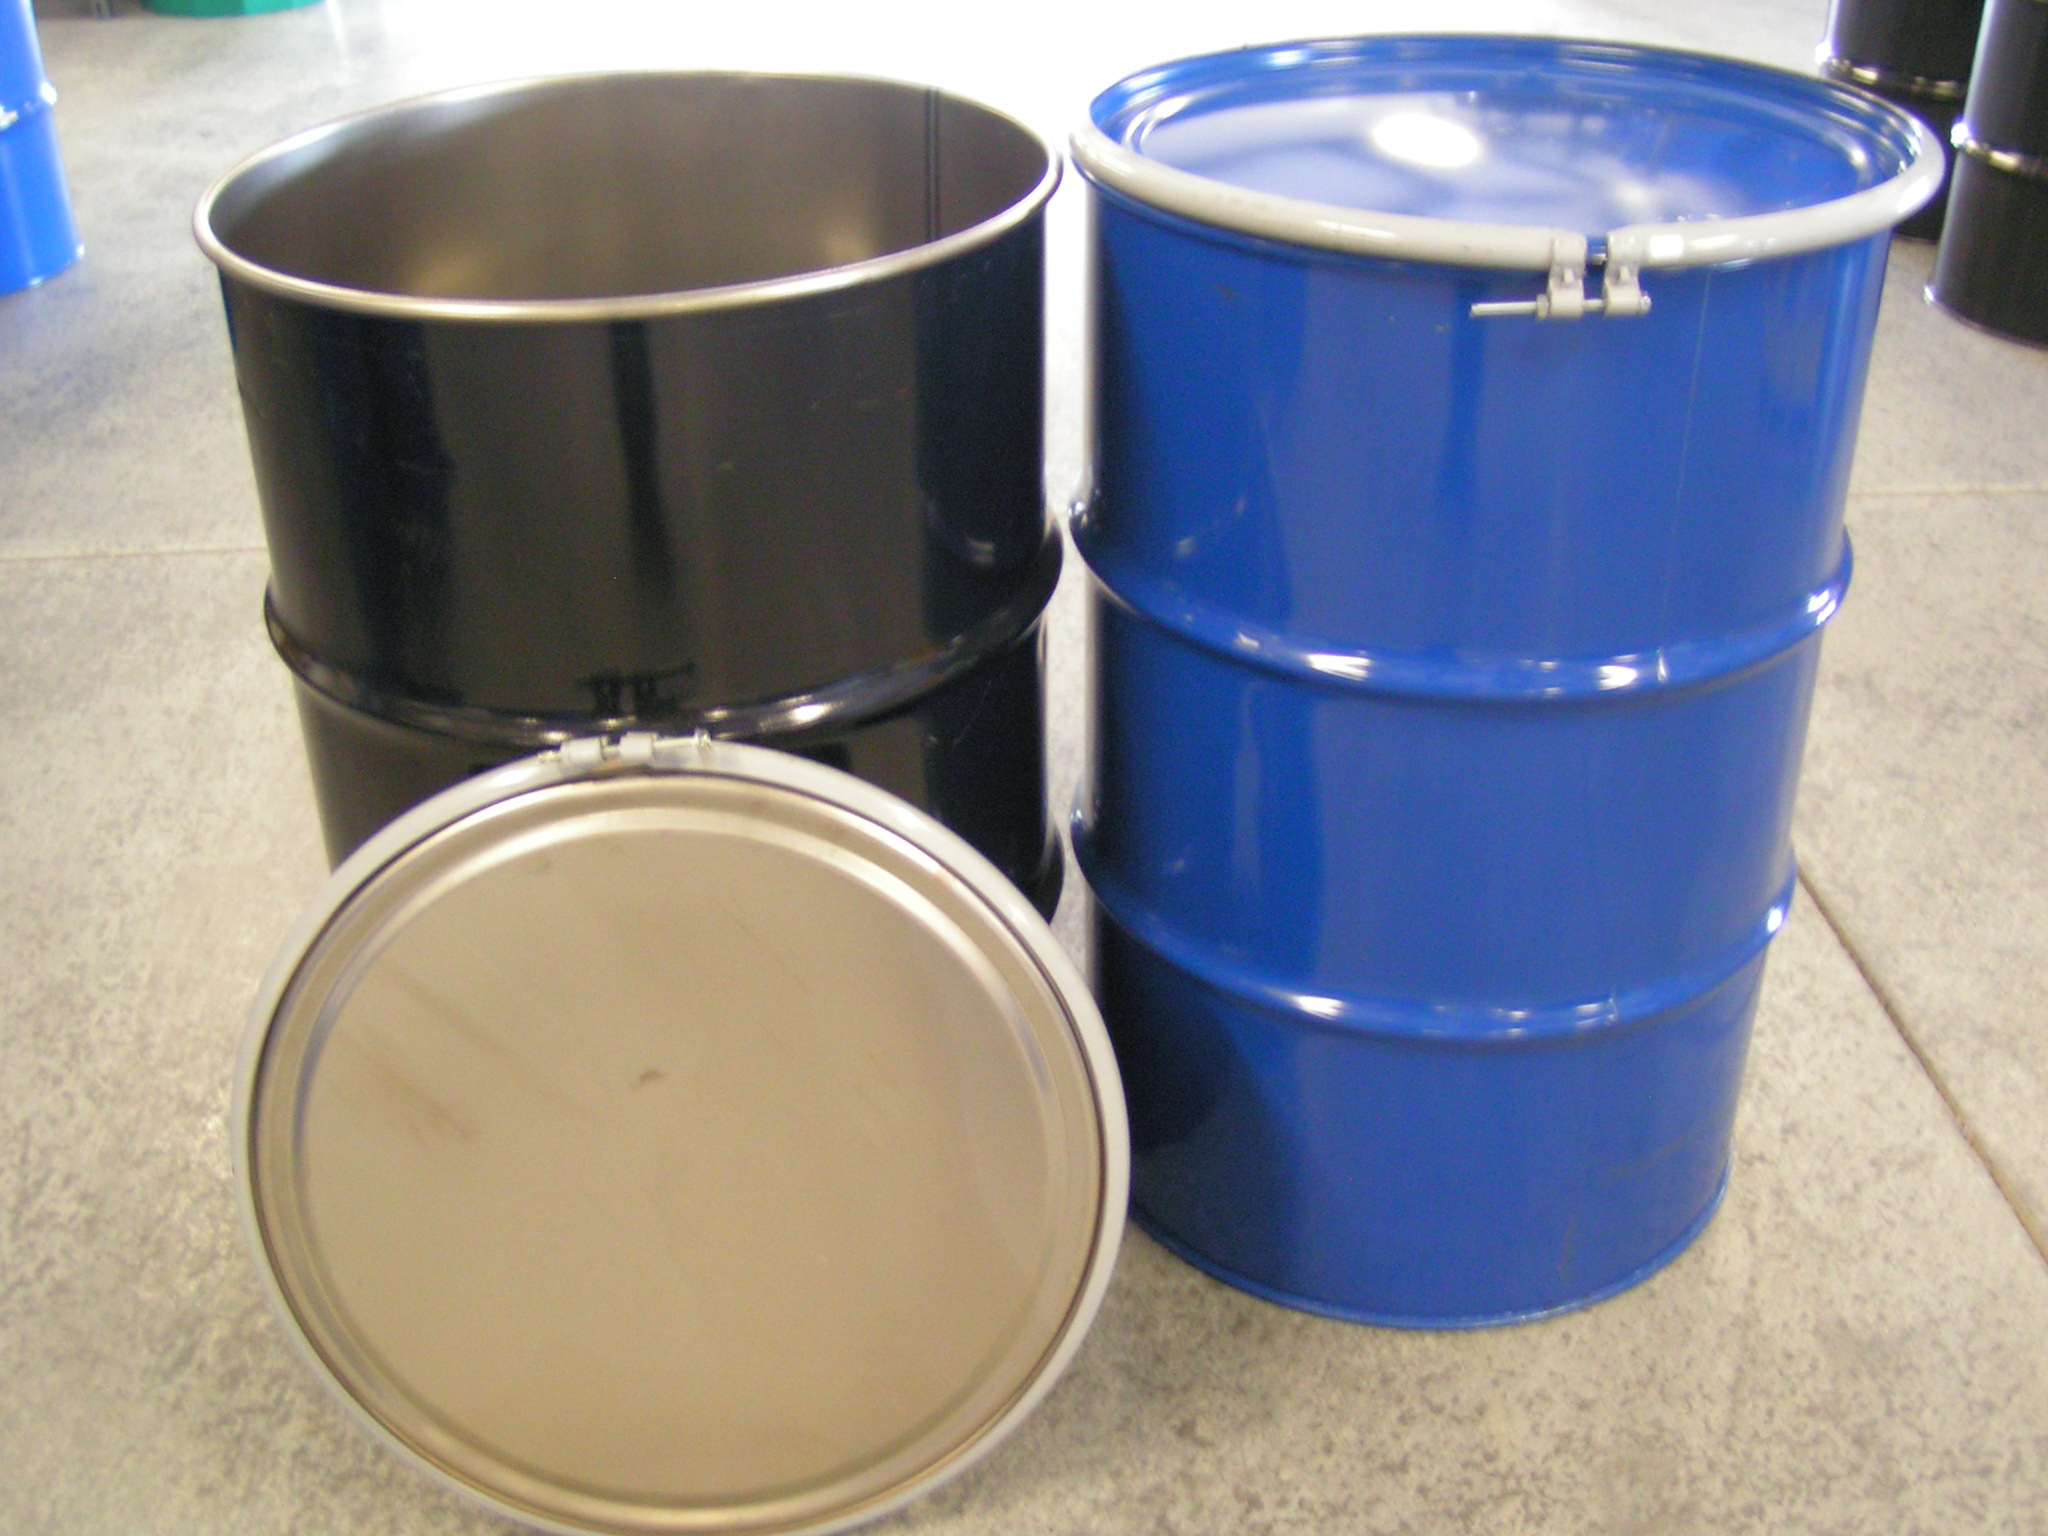 New steel drums new metal drums in 55 gallon size new for Metal 55 gallon drum